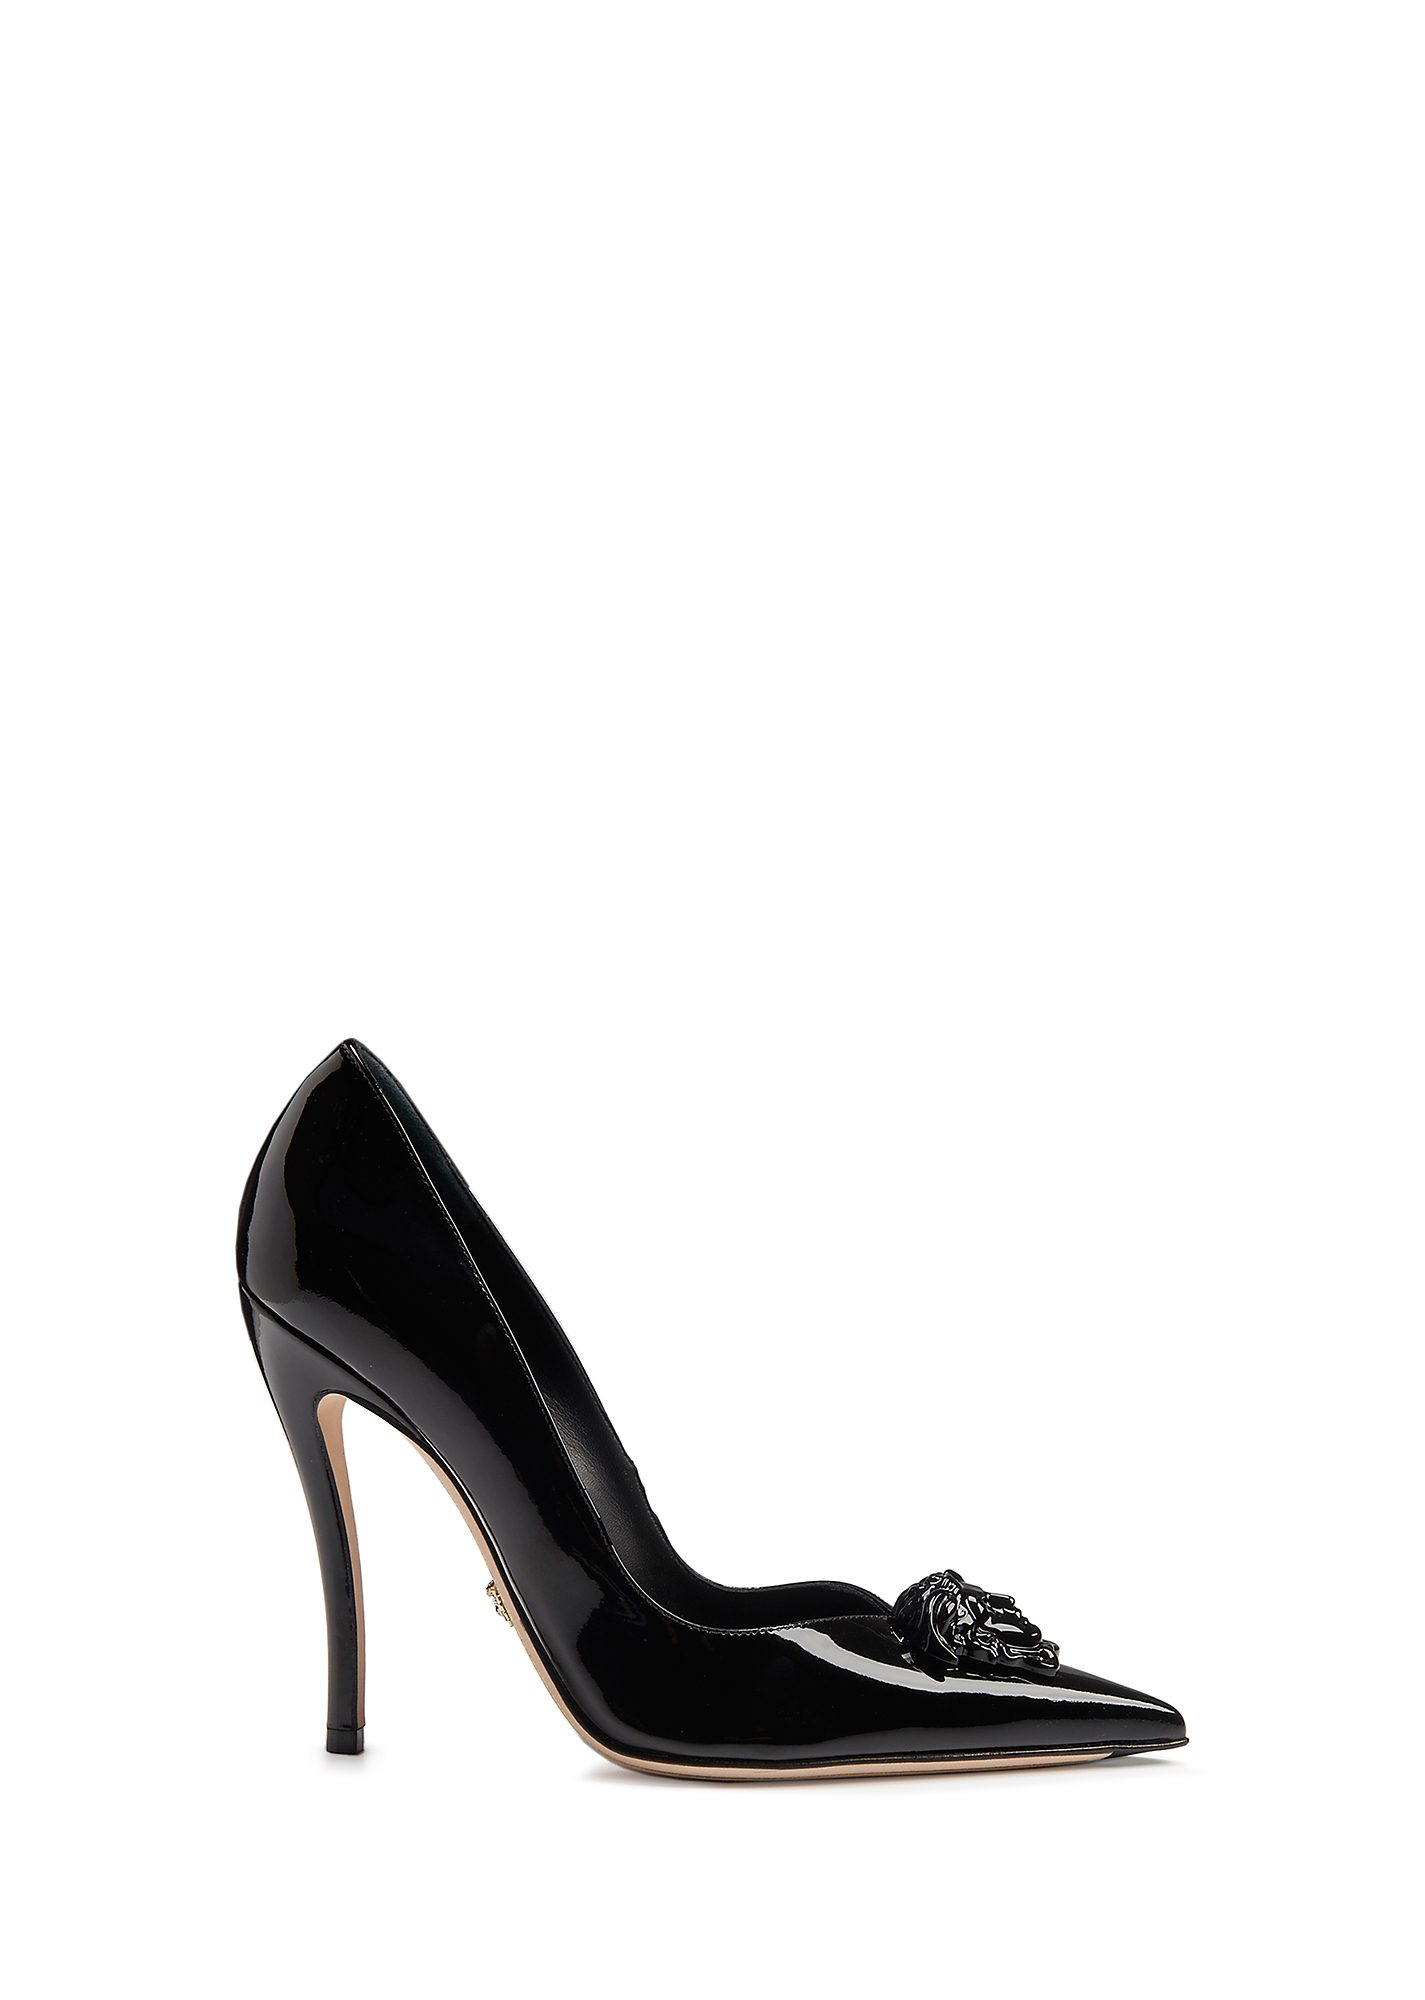 Palazzo Patent Leather Pumps in Black